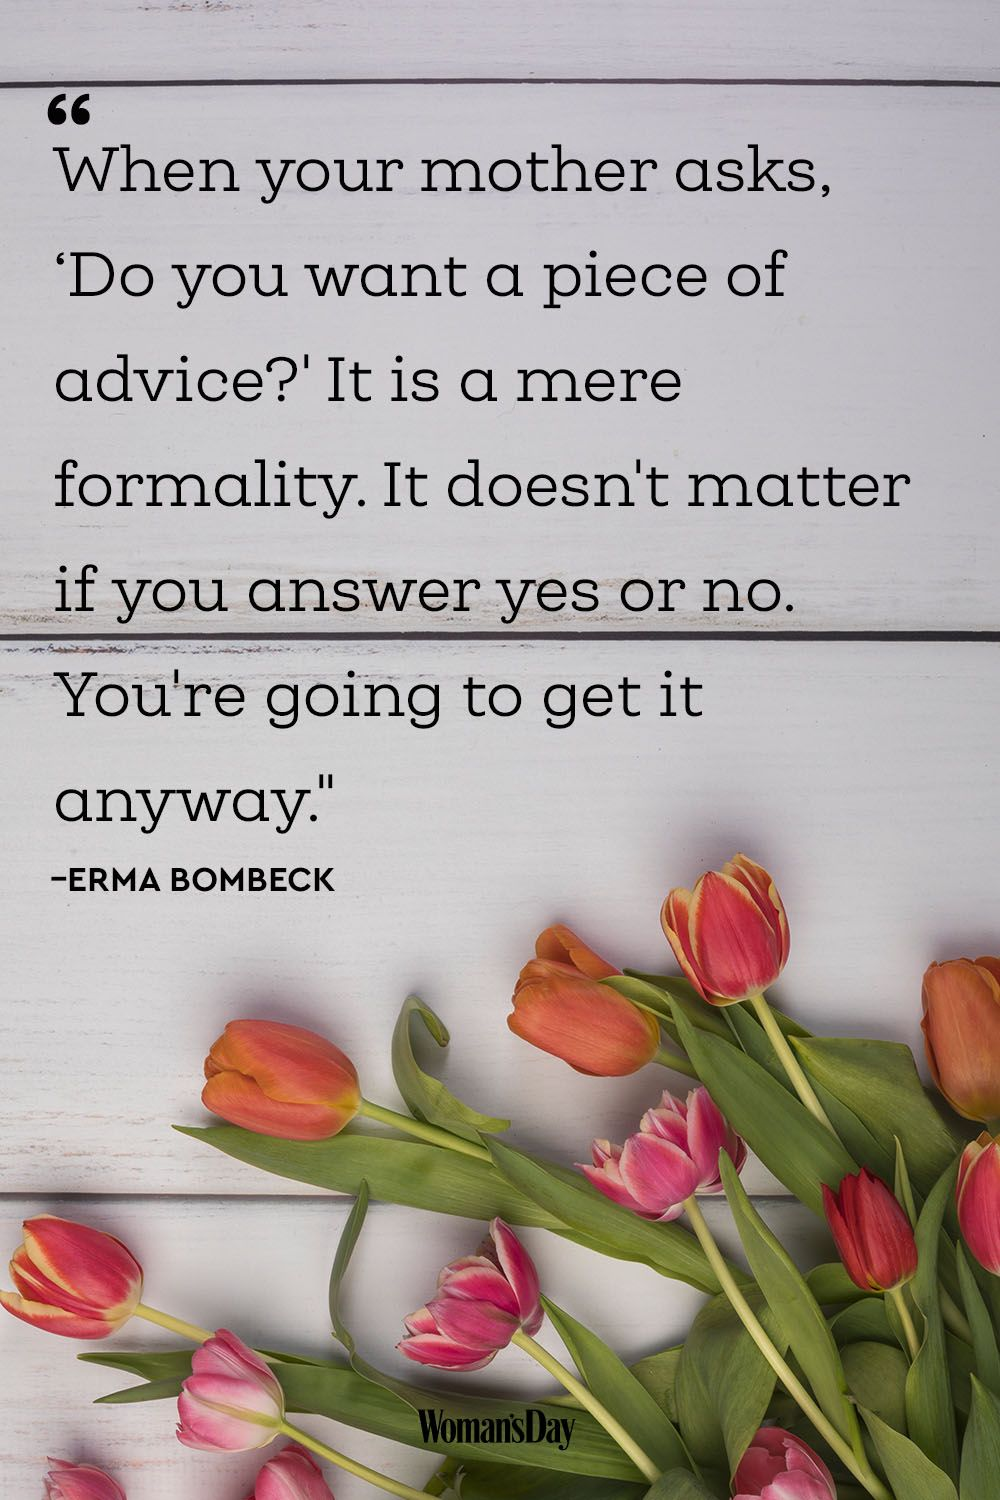 Mothers Day Poems and Quotes - Erma Bombeck